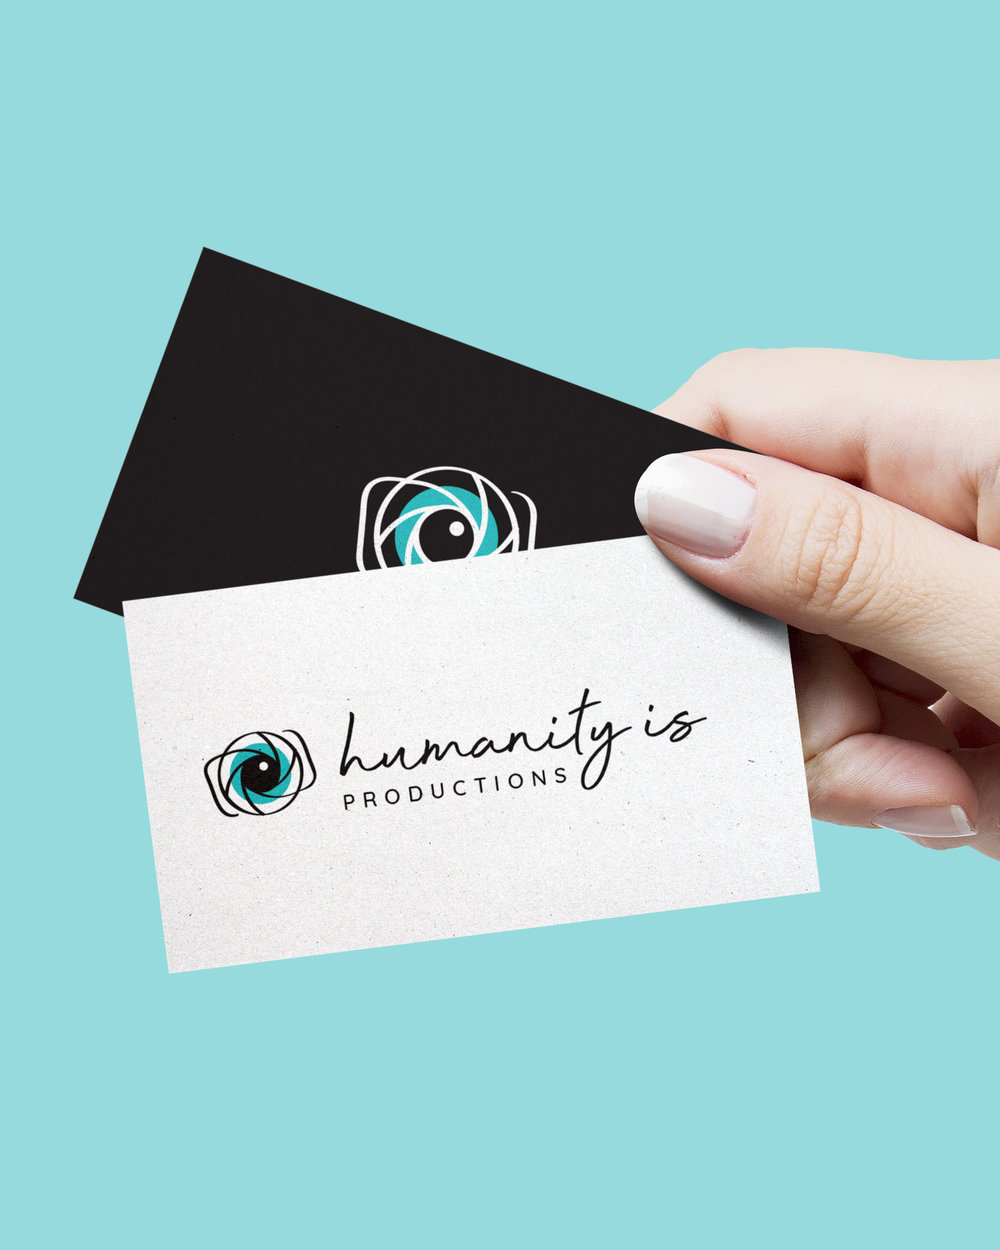 Business Card Hand Humanity Is Vertical.jpg